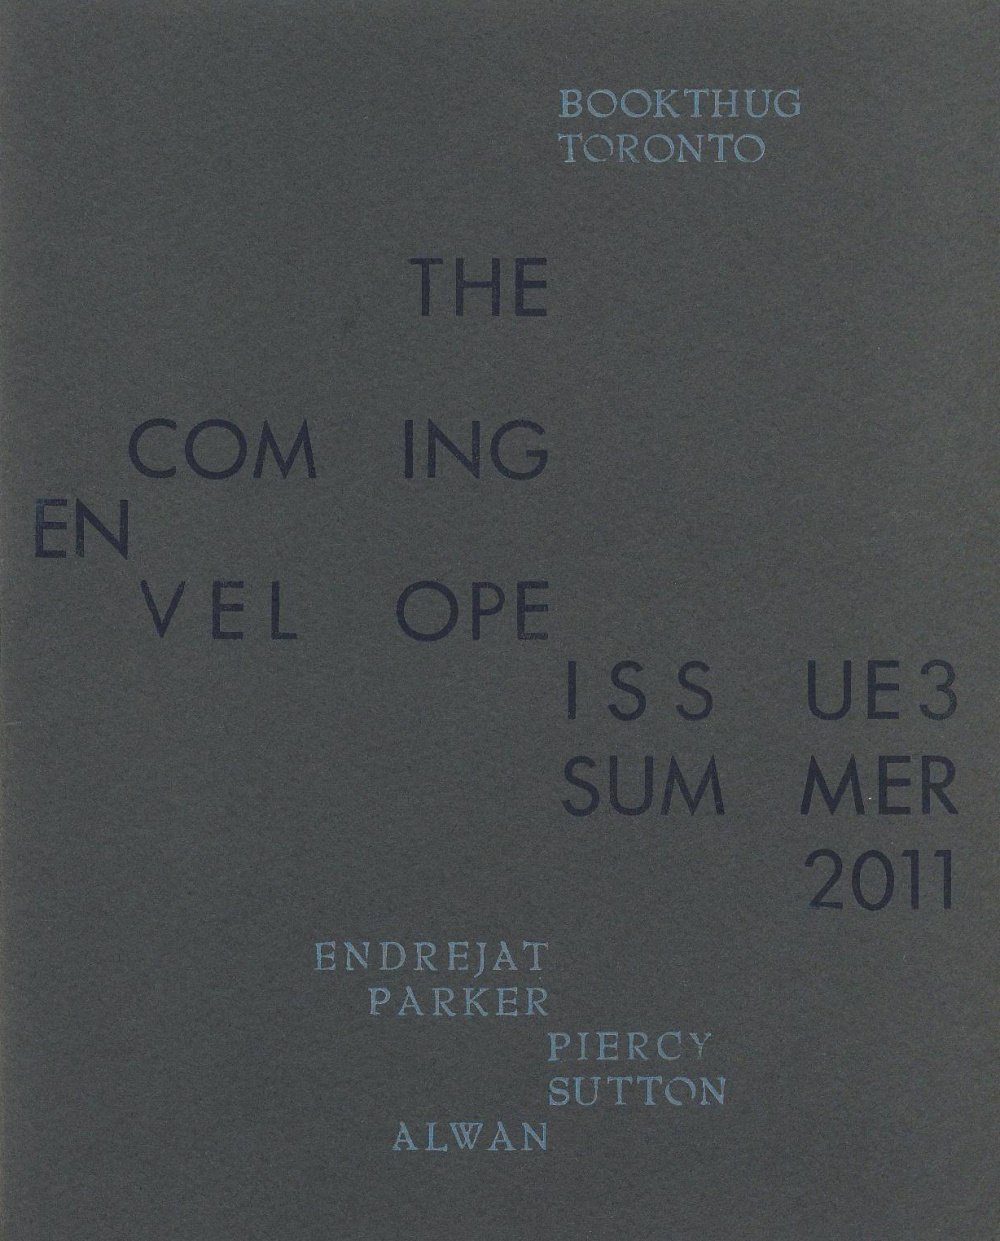 The Coming Envelope, Issue 3, Summer 2011